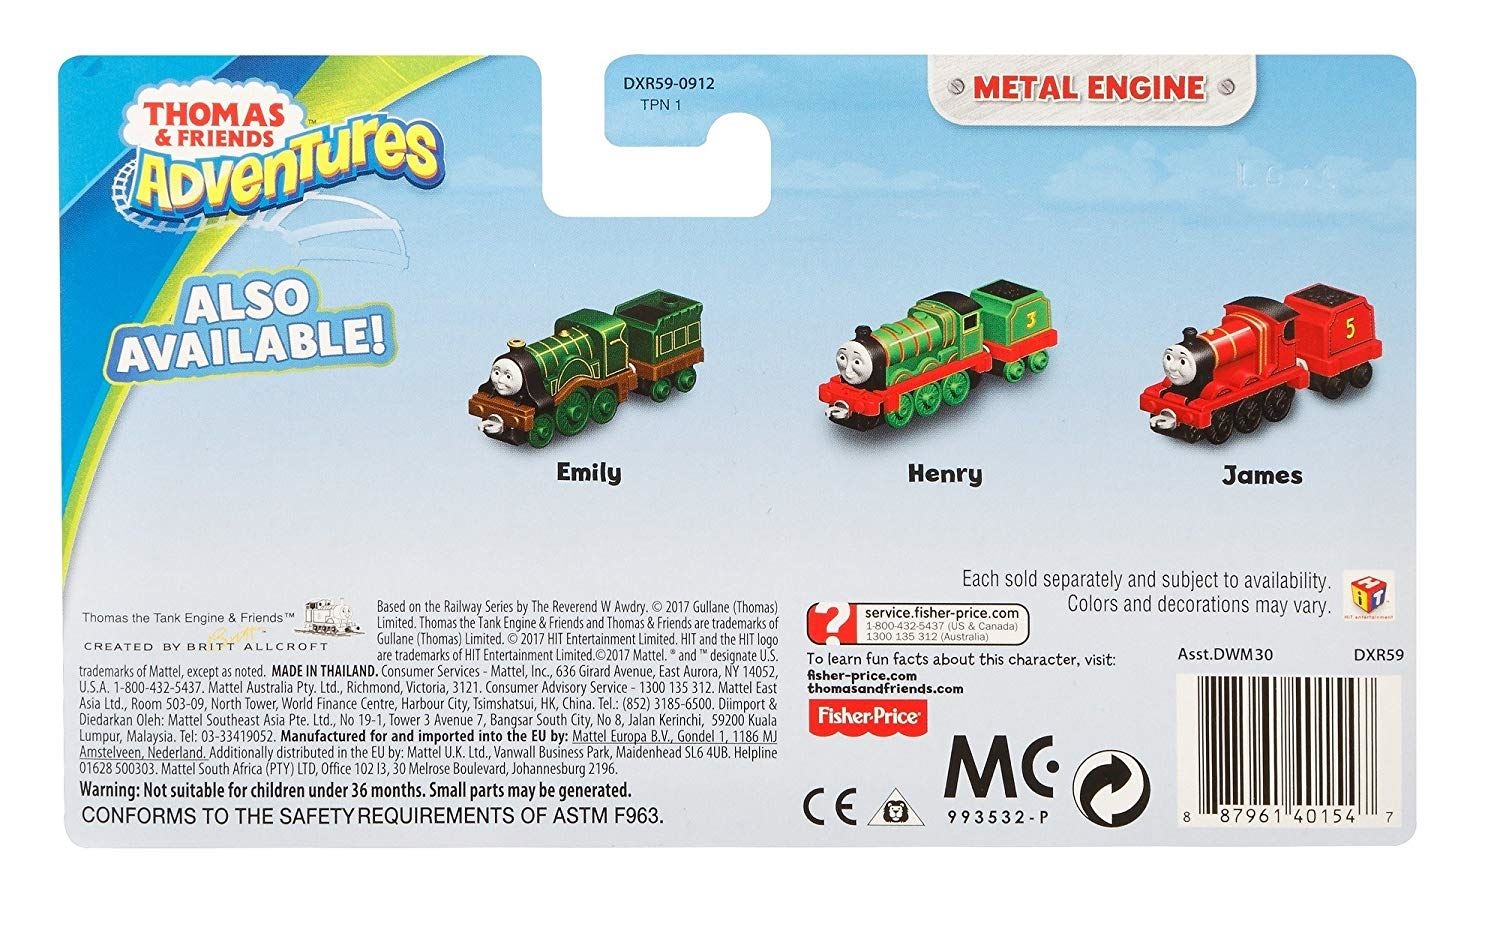 Thomas-amp-Friends-Adventures-Ferdinand-lexi-Shane-Dash-Huge-Bill-Trains Indexbild 37